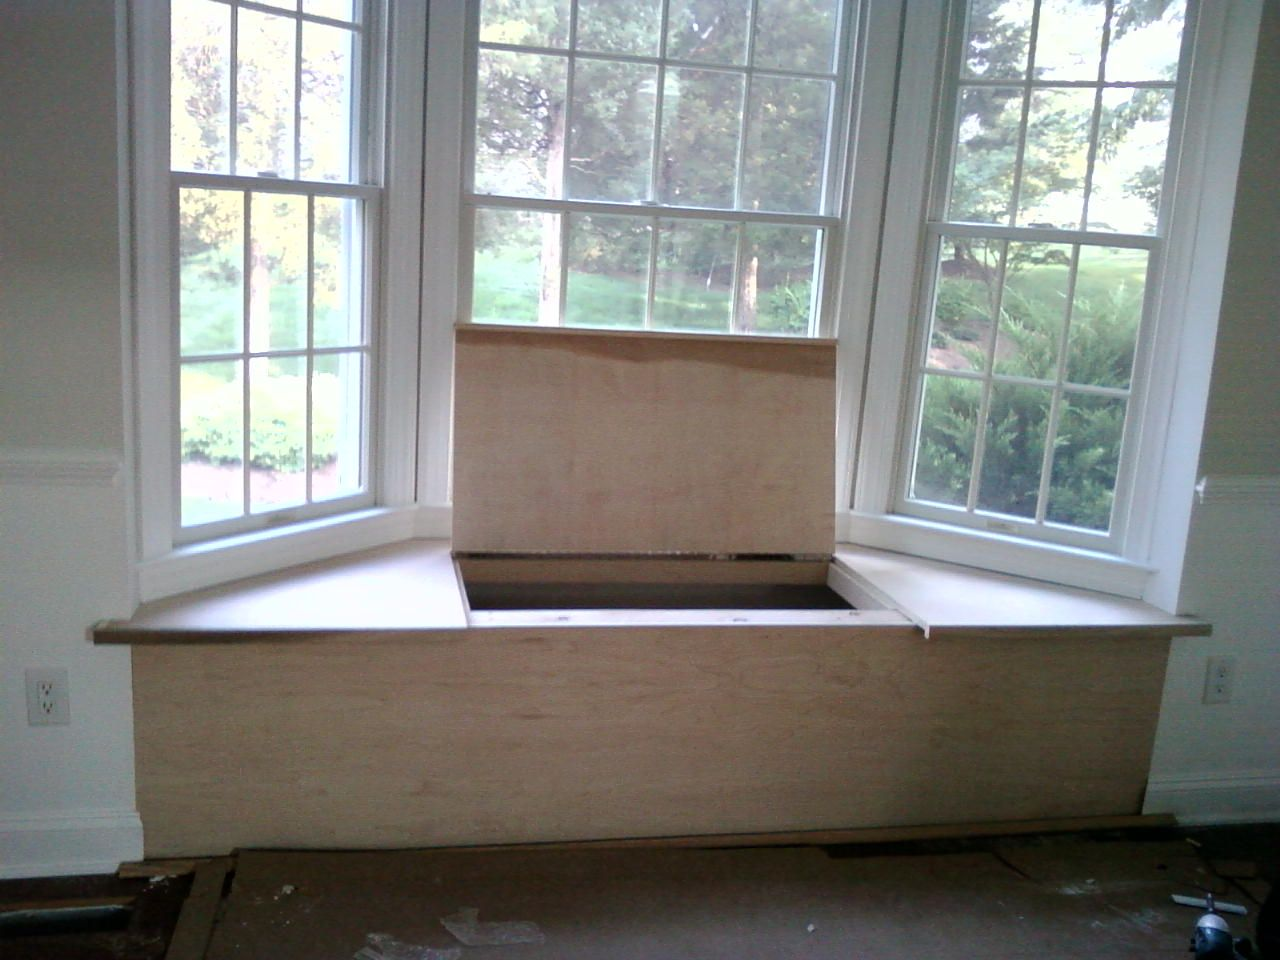 Furniture Bay Window Seating For Home Interior Designs .